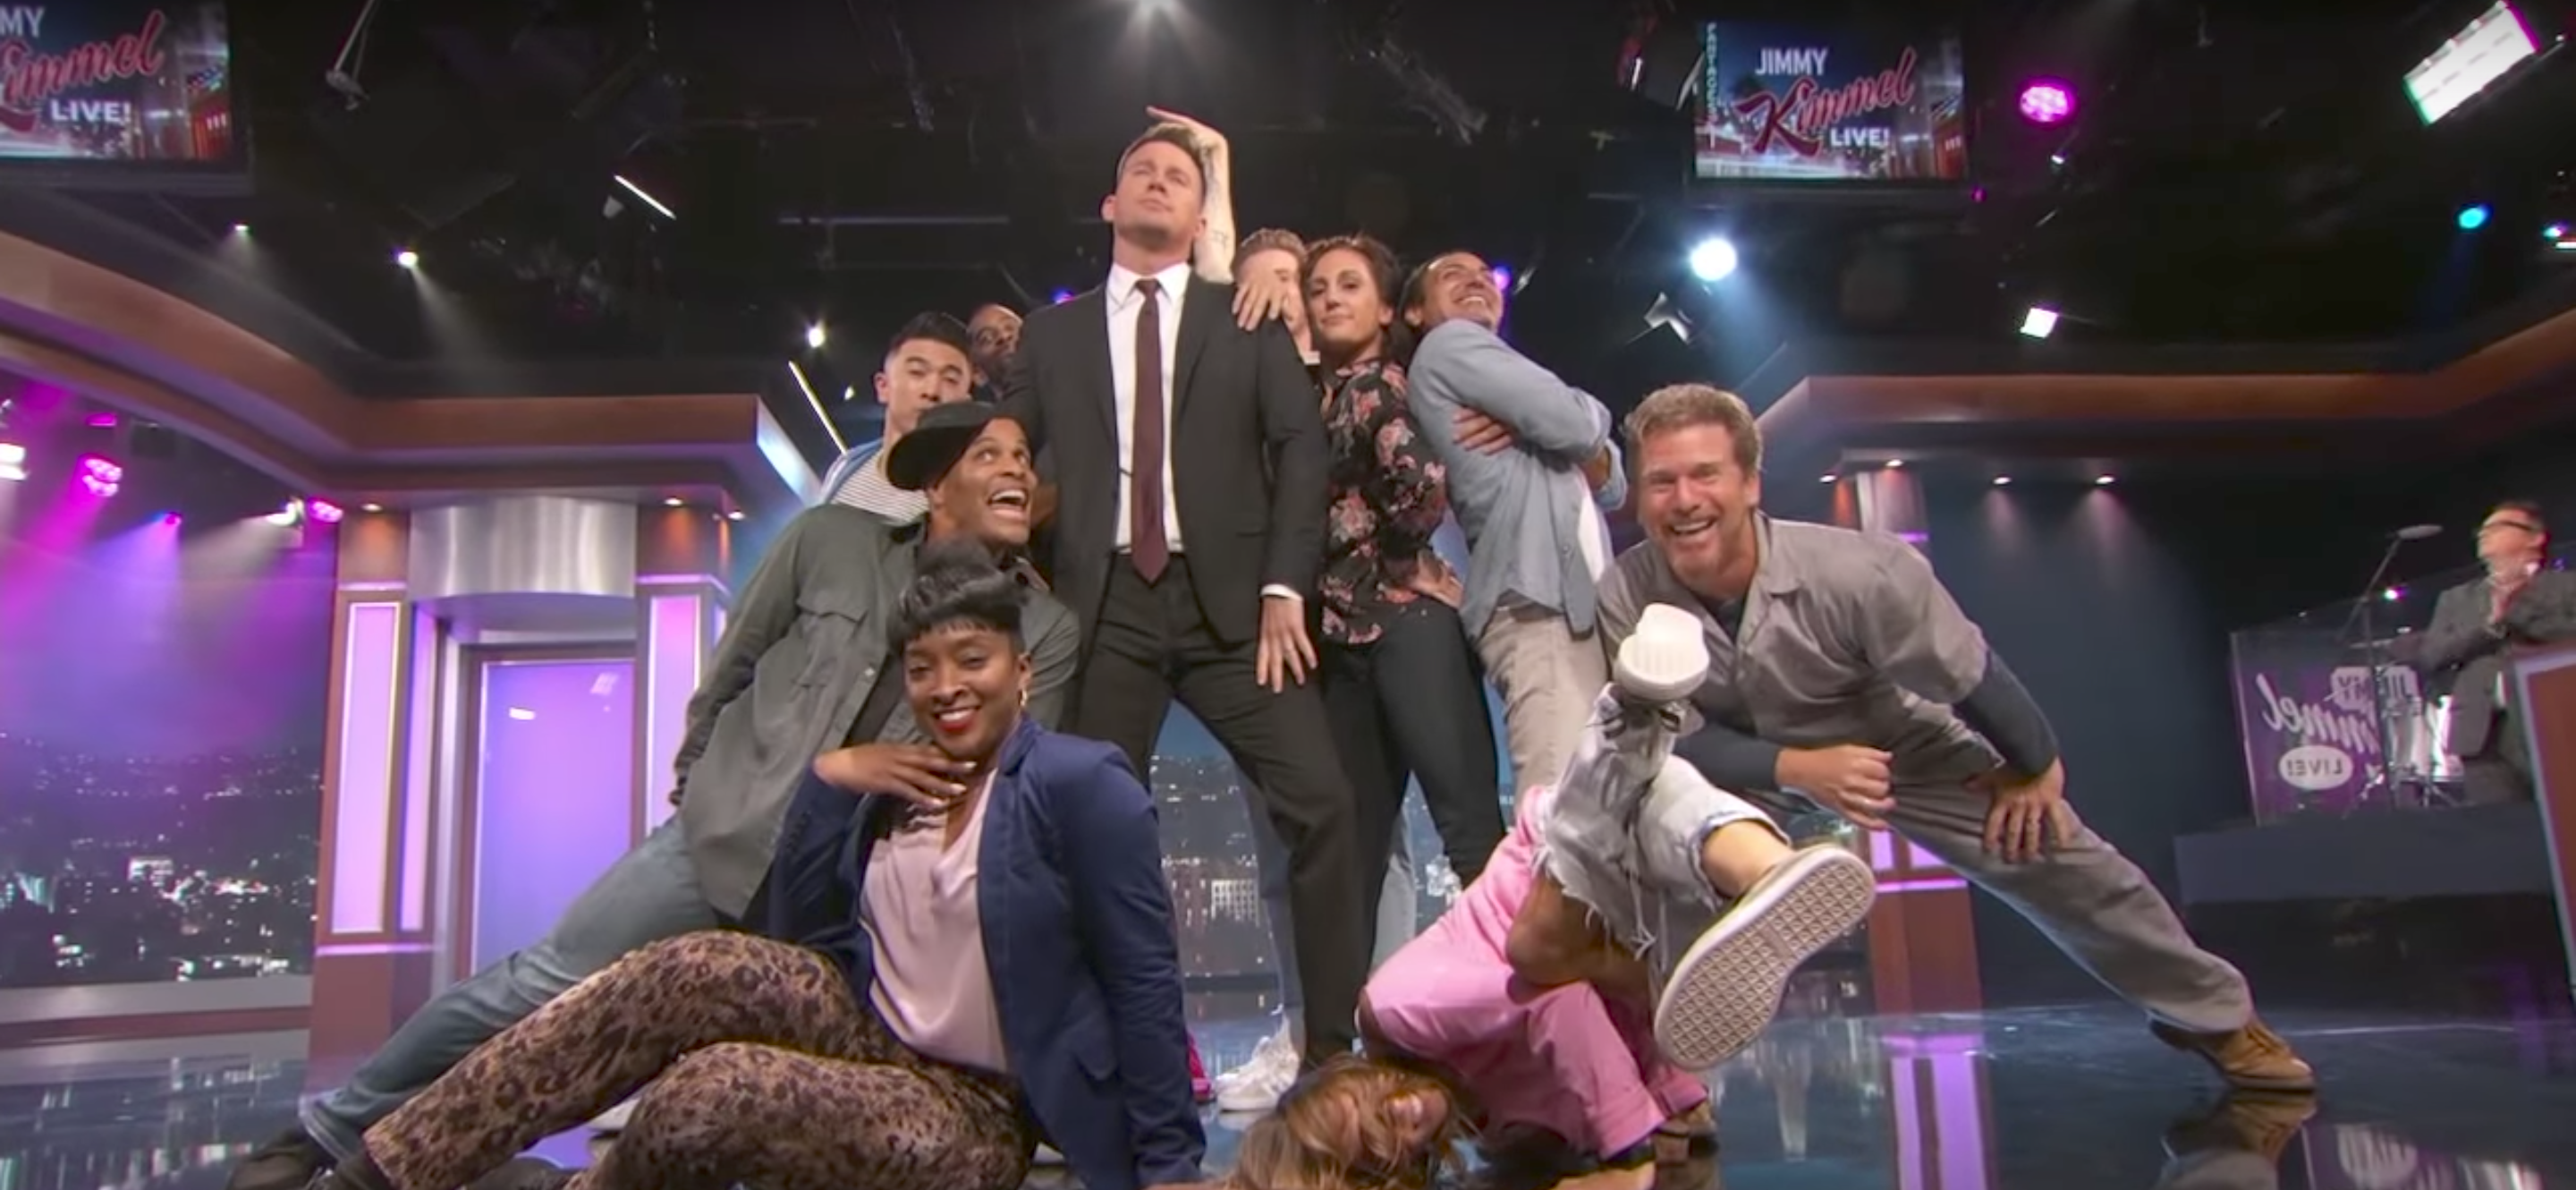 watch: channing tatum dances and pranks on jimmy kimmel | collider